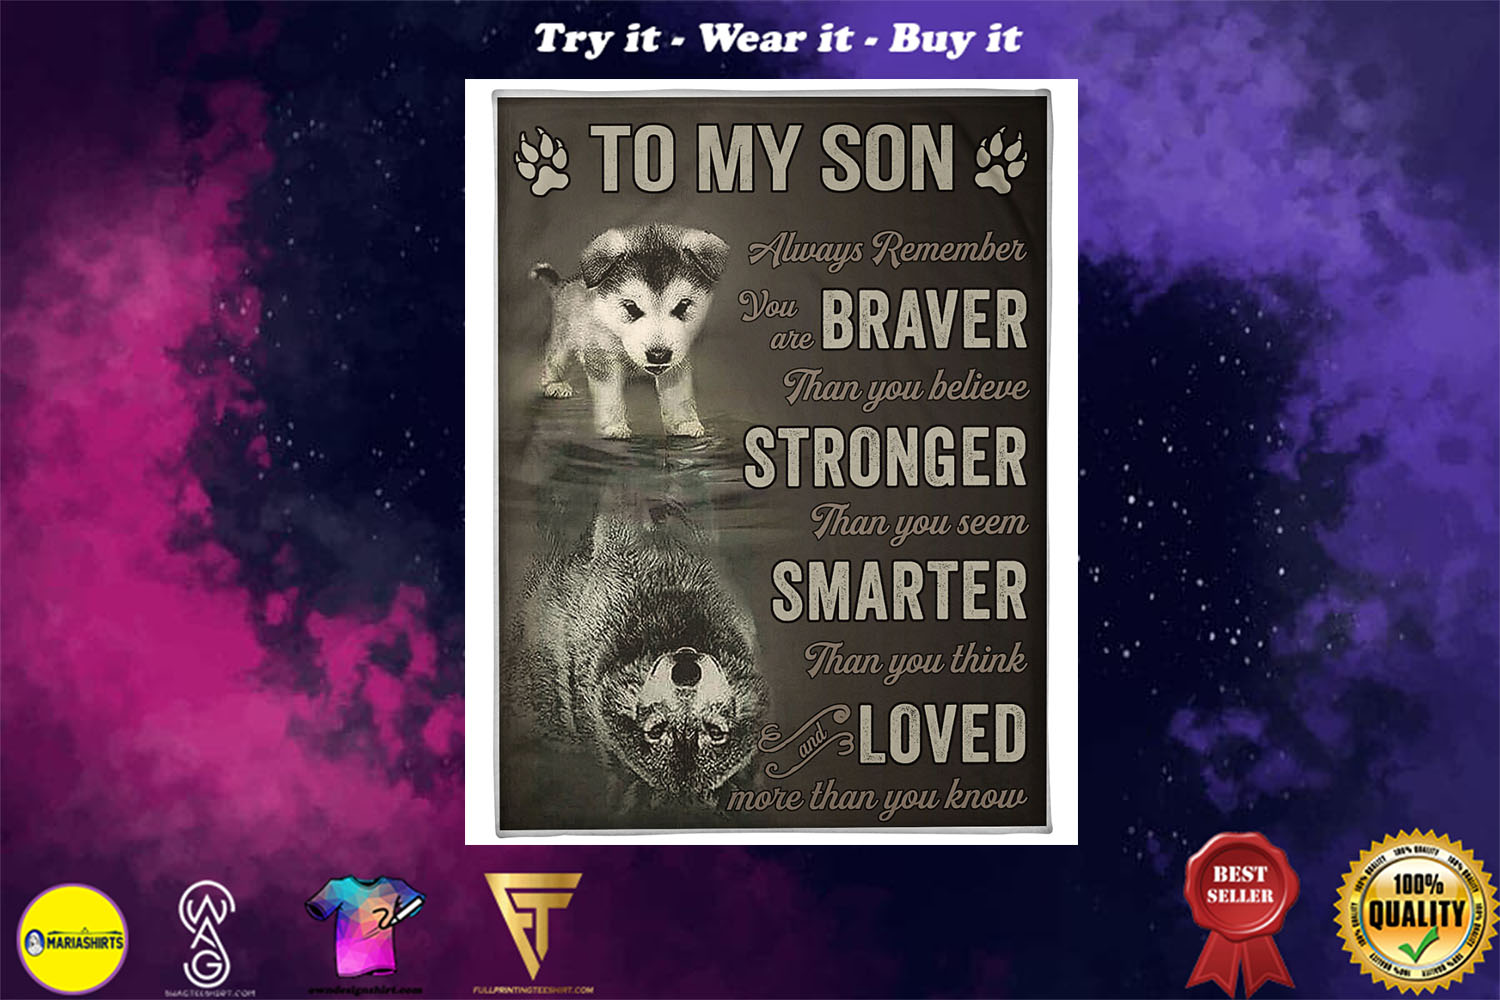 wolf to my son always remember loved more than you know full printing blanket - Copy